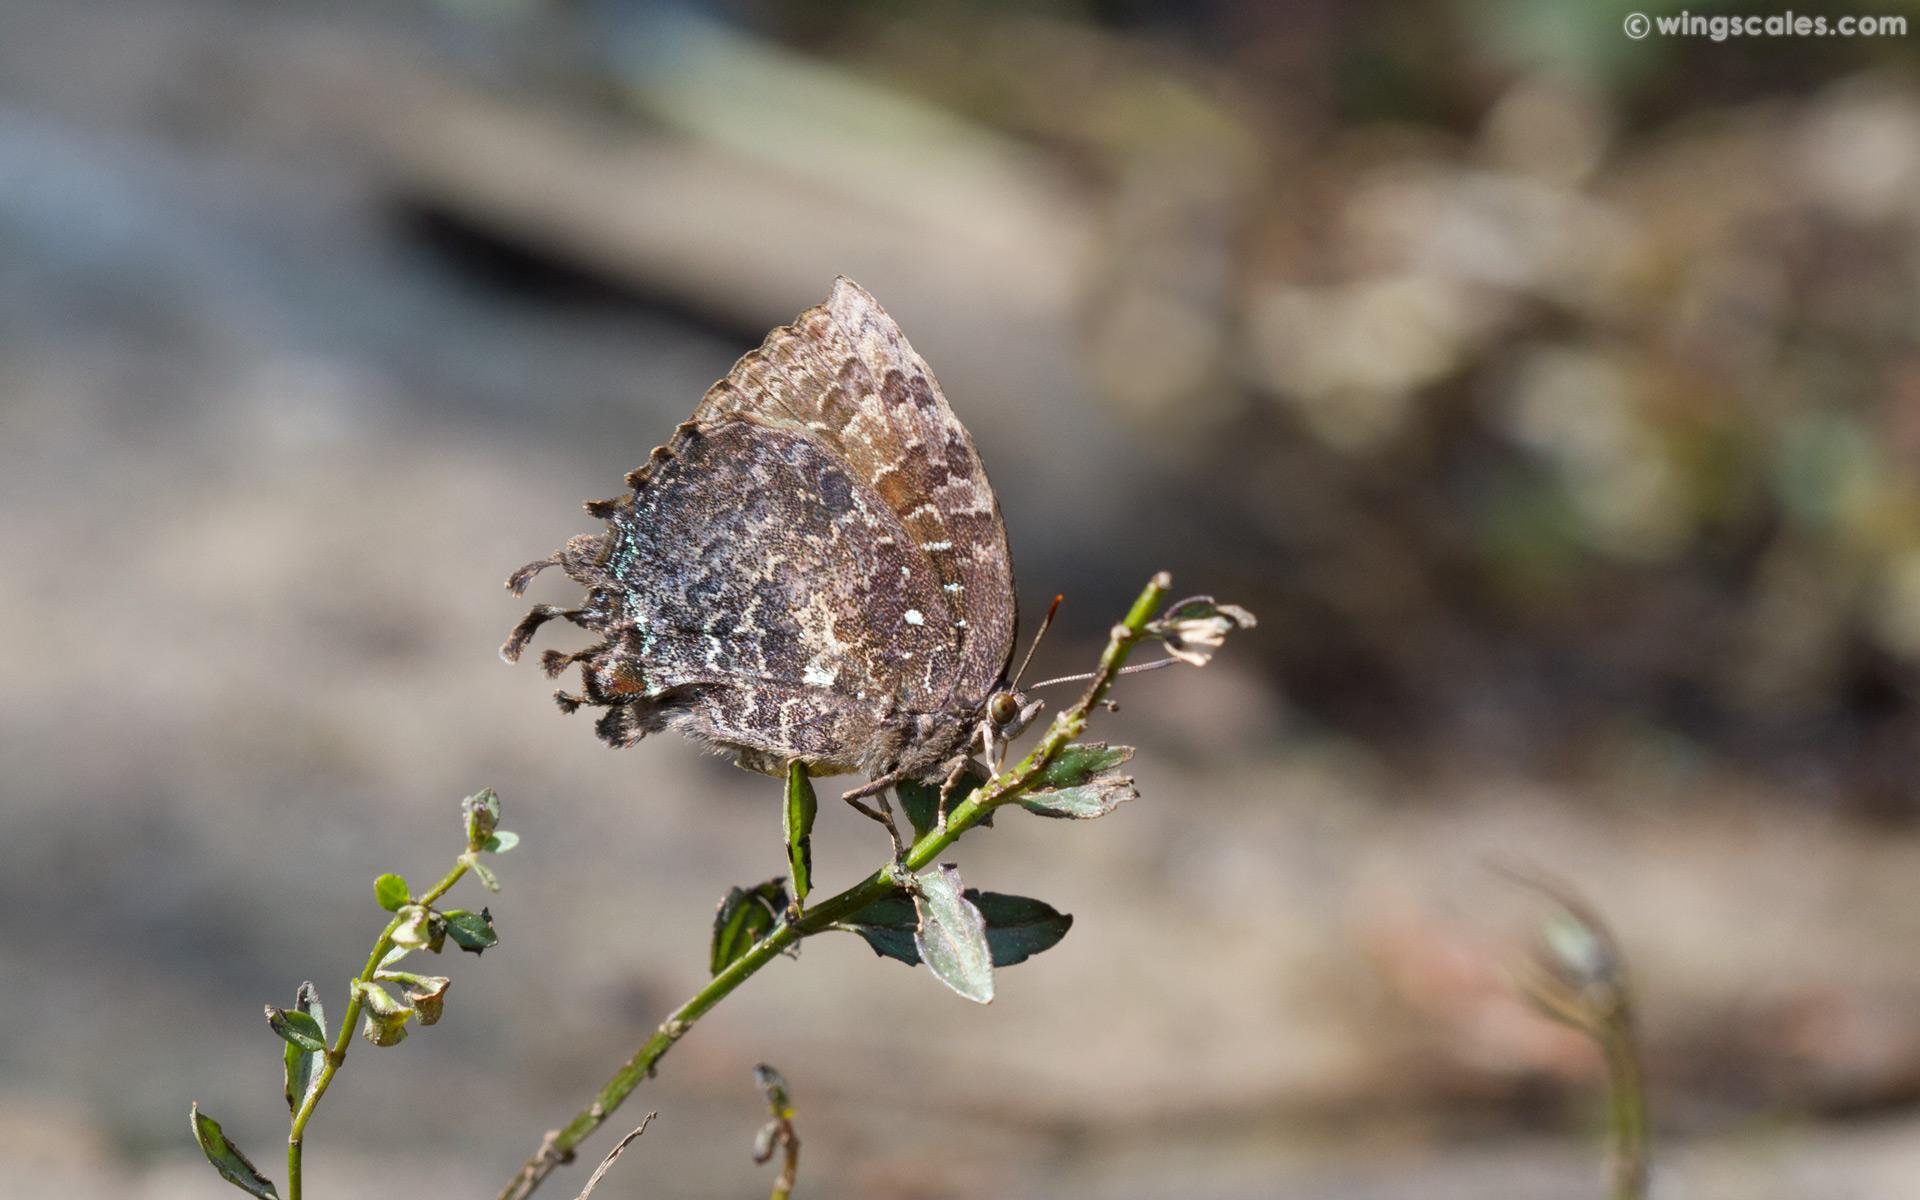 Thaduka multicaudata multicaudata : Many-tailed Oakblue (ผีเสื้อฟ้าหางสาม)